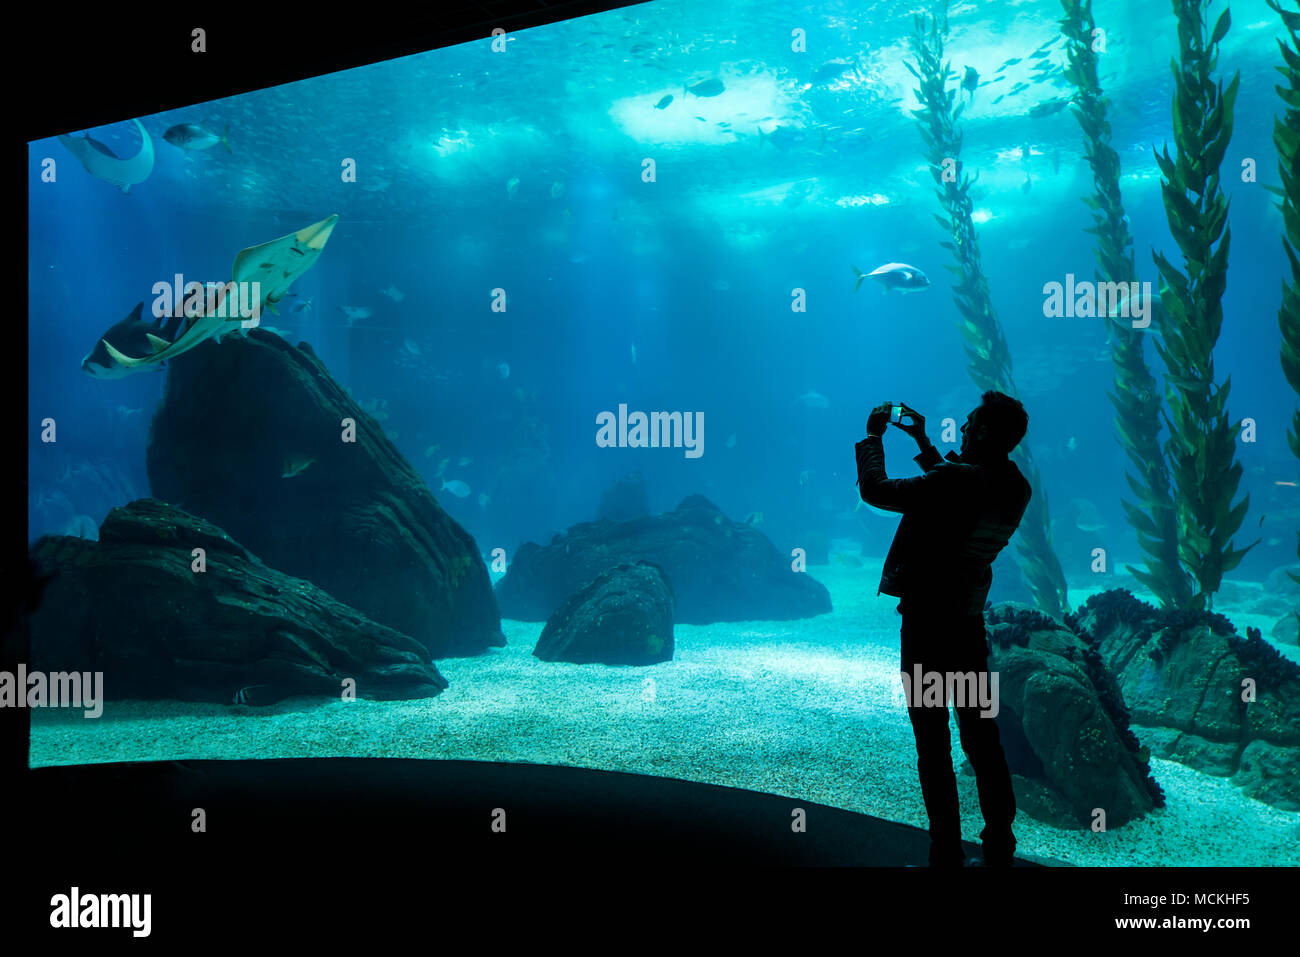 a woman while she photographs a shark in the aquarium of Lisbon, Portugal - Stock Image